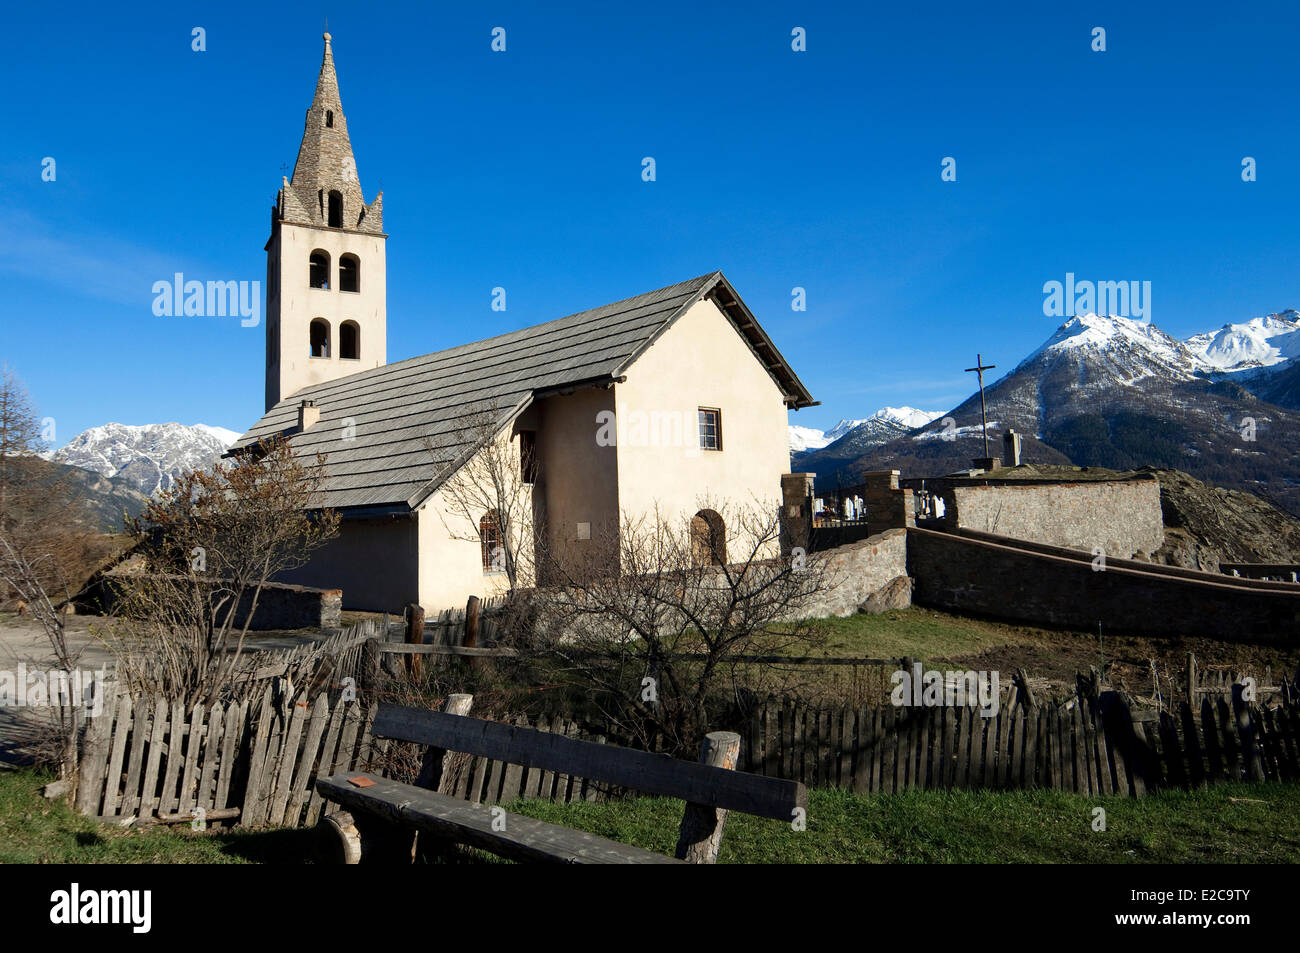 France, Hautes Alpes, Puy Saint Pierre, church and cemetery - Stock Image